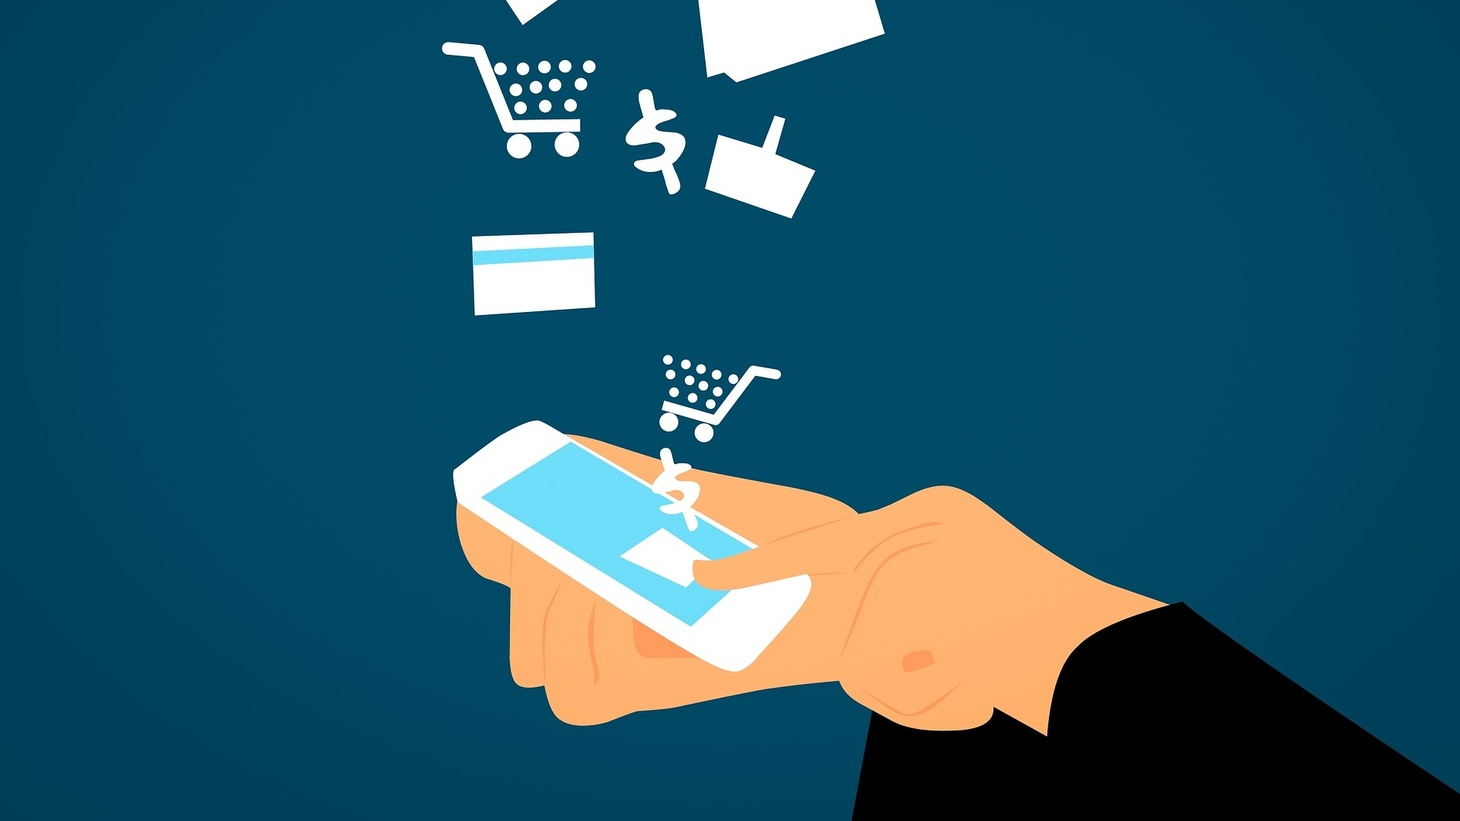 Digital commerce illustration.